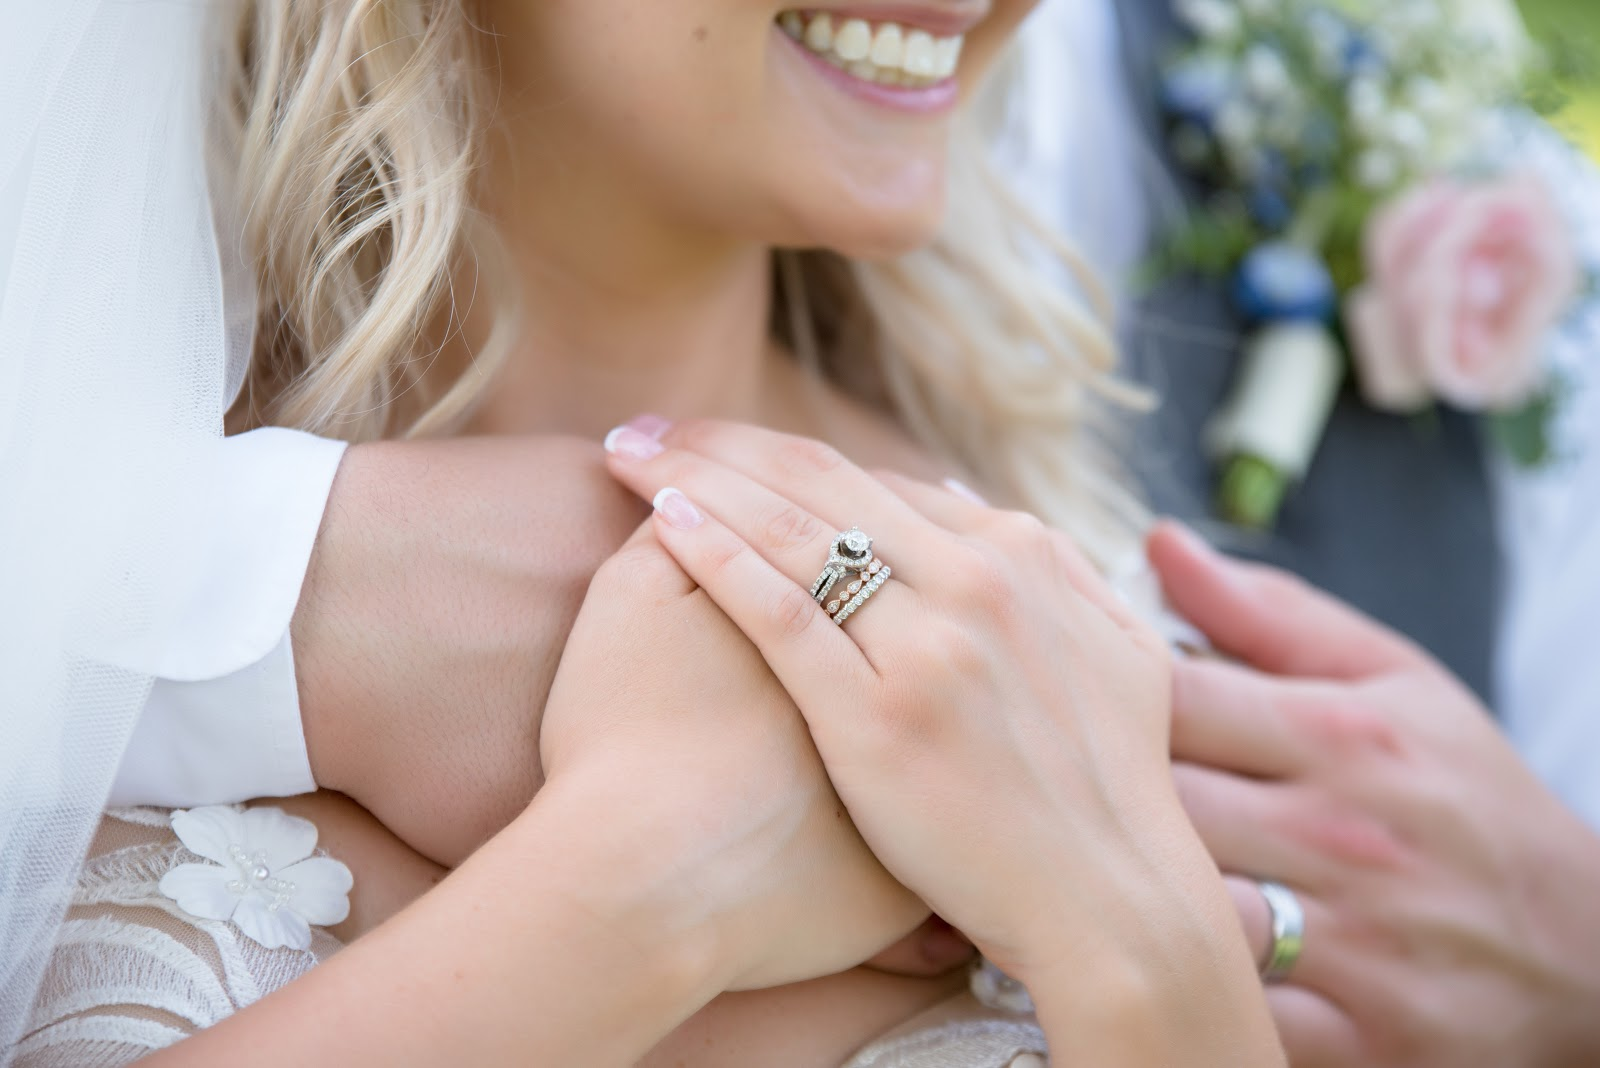 Stackable Wedding Bands: Tips to Mix and Match Metals